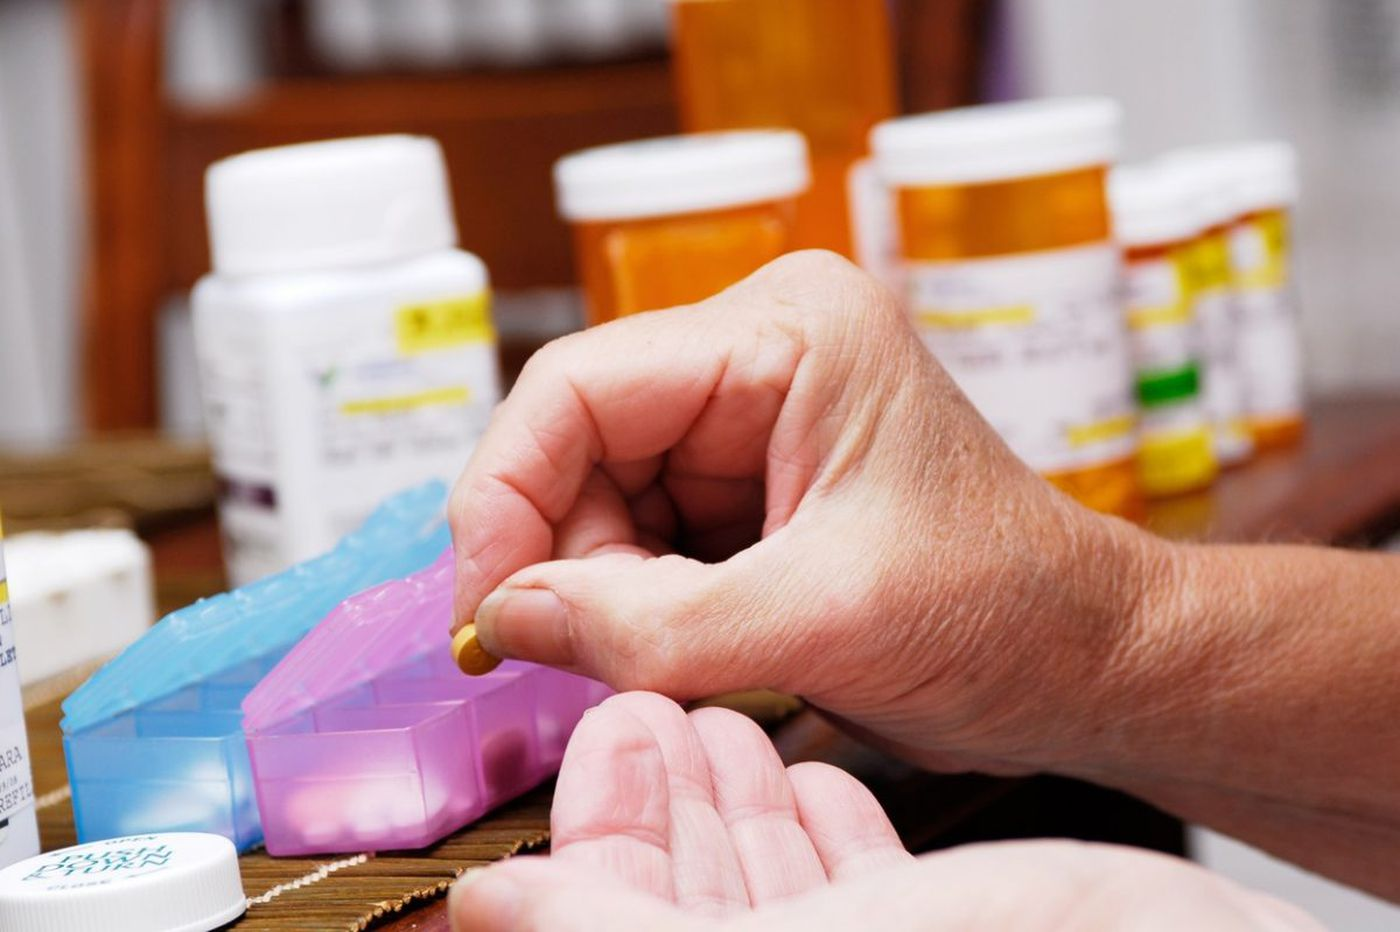 The other drug crisis: Seniors taking meds they don't need, and that hurt them